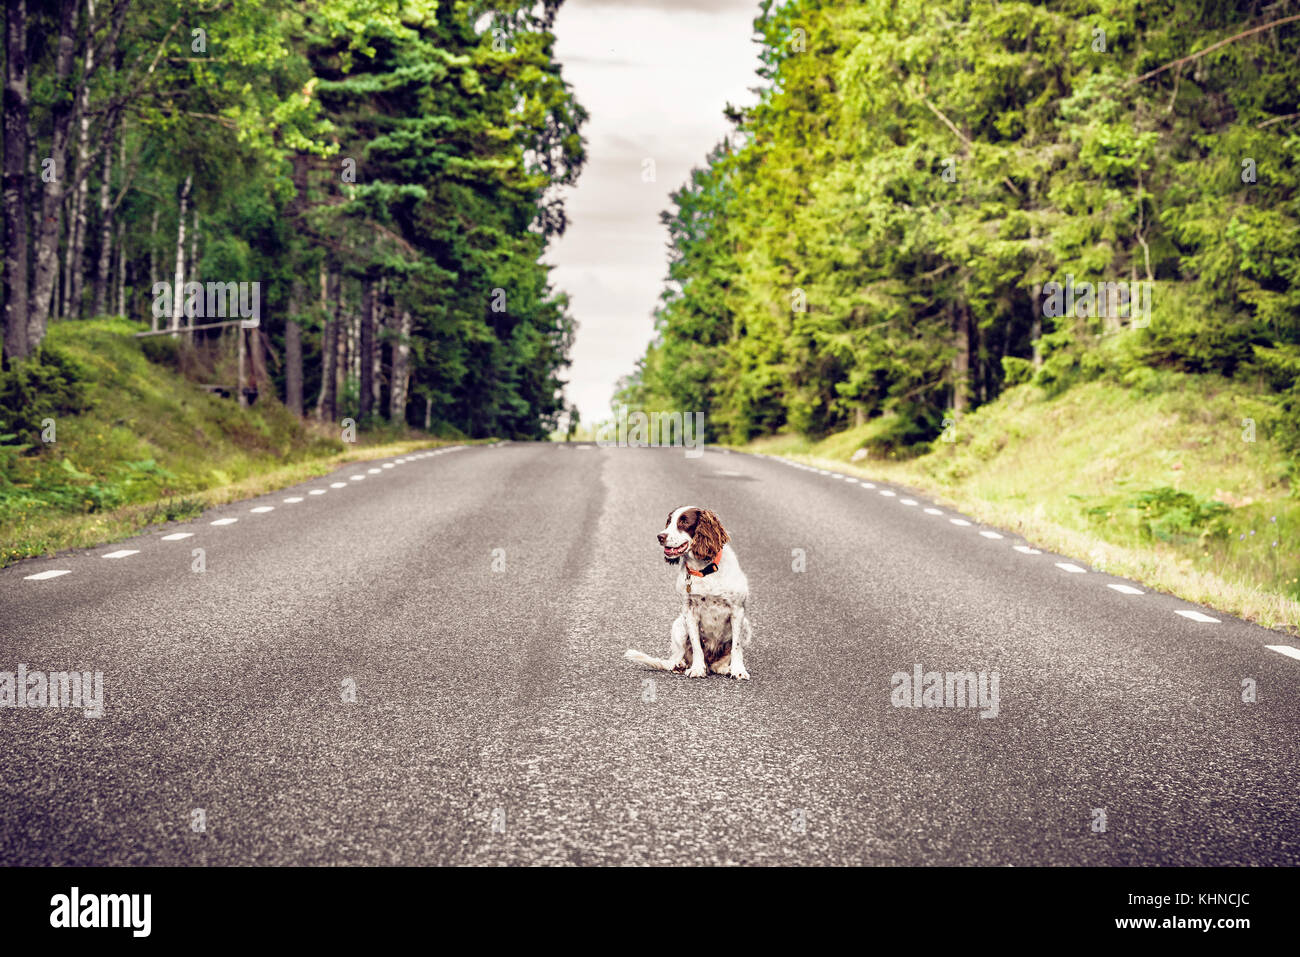 Dog on an empty asphalt road in a forest sitting in the middle of the road - Stock Image